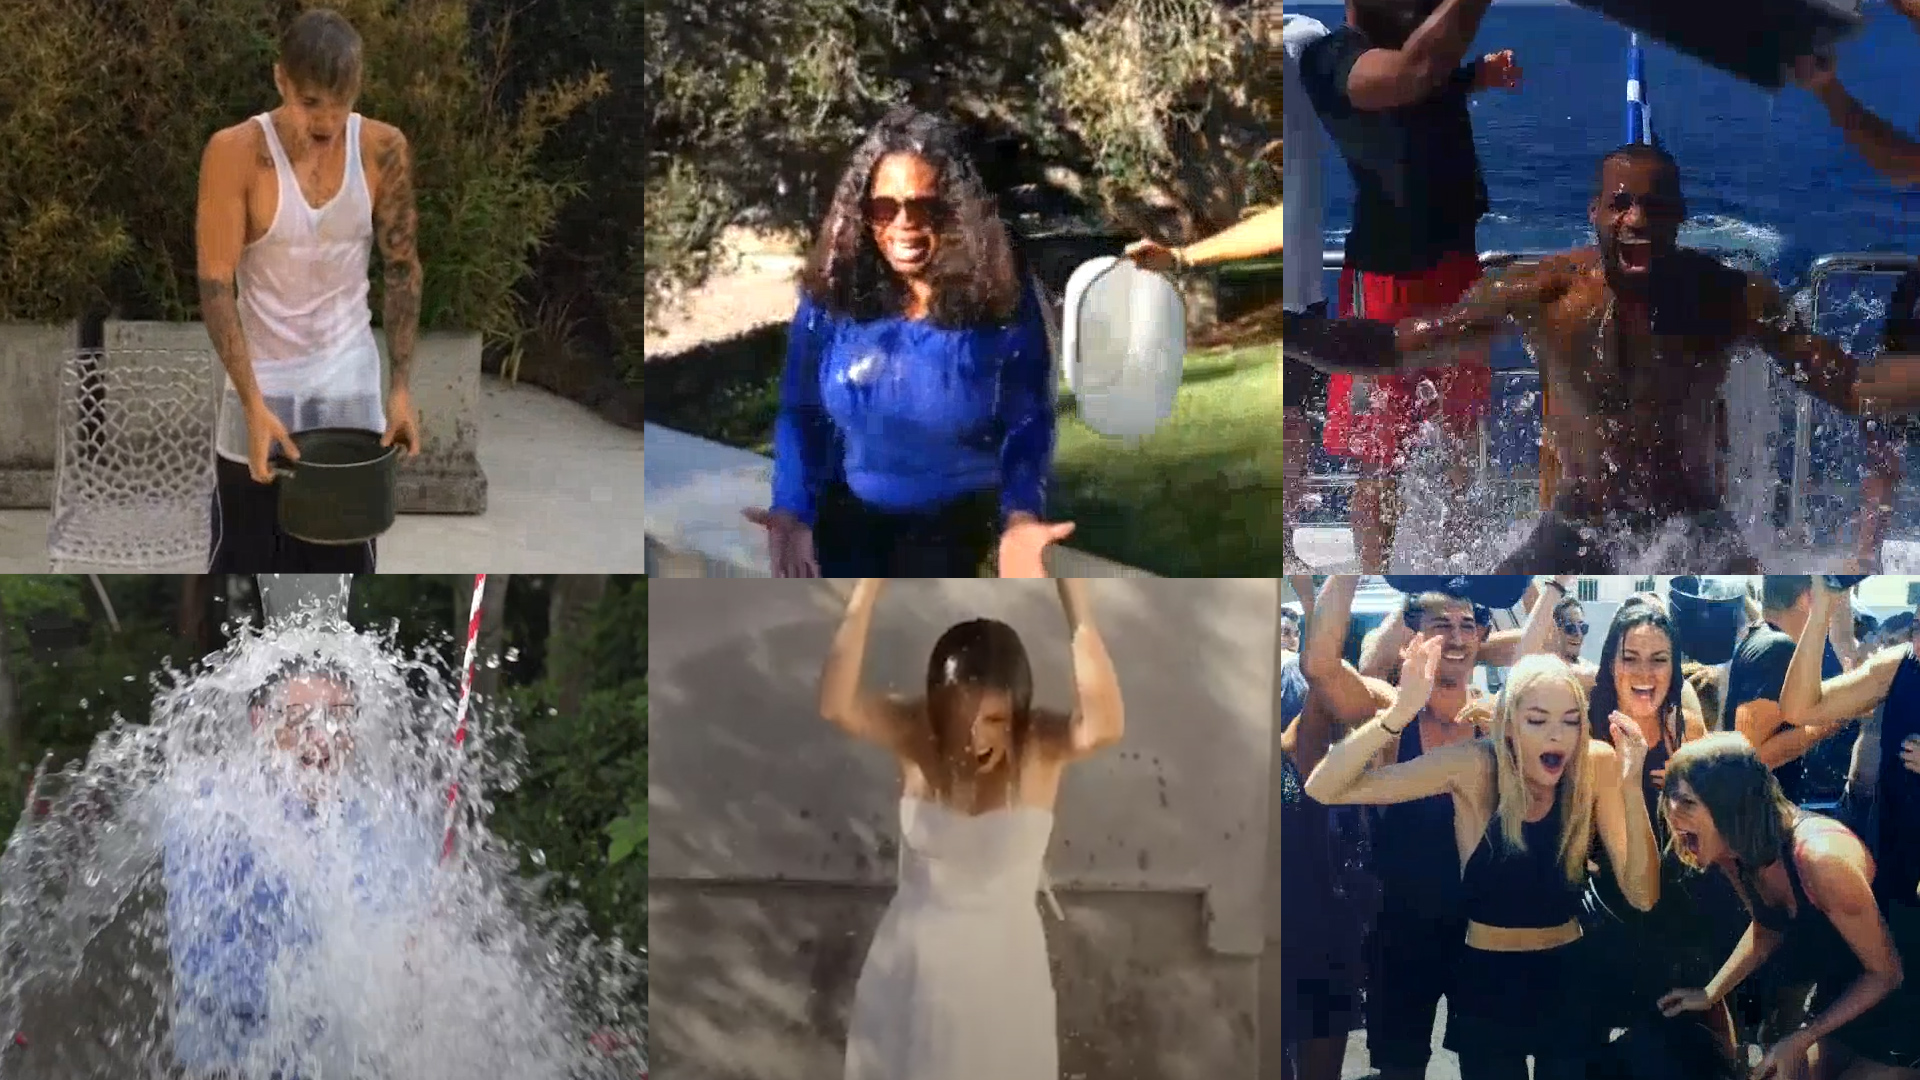 Researchers Find Big News For ALS Patients Thanks To Ice Bucket Challenge